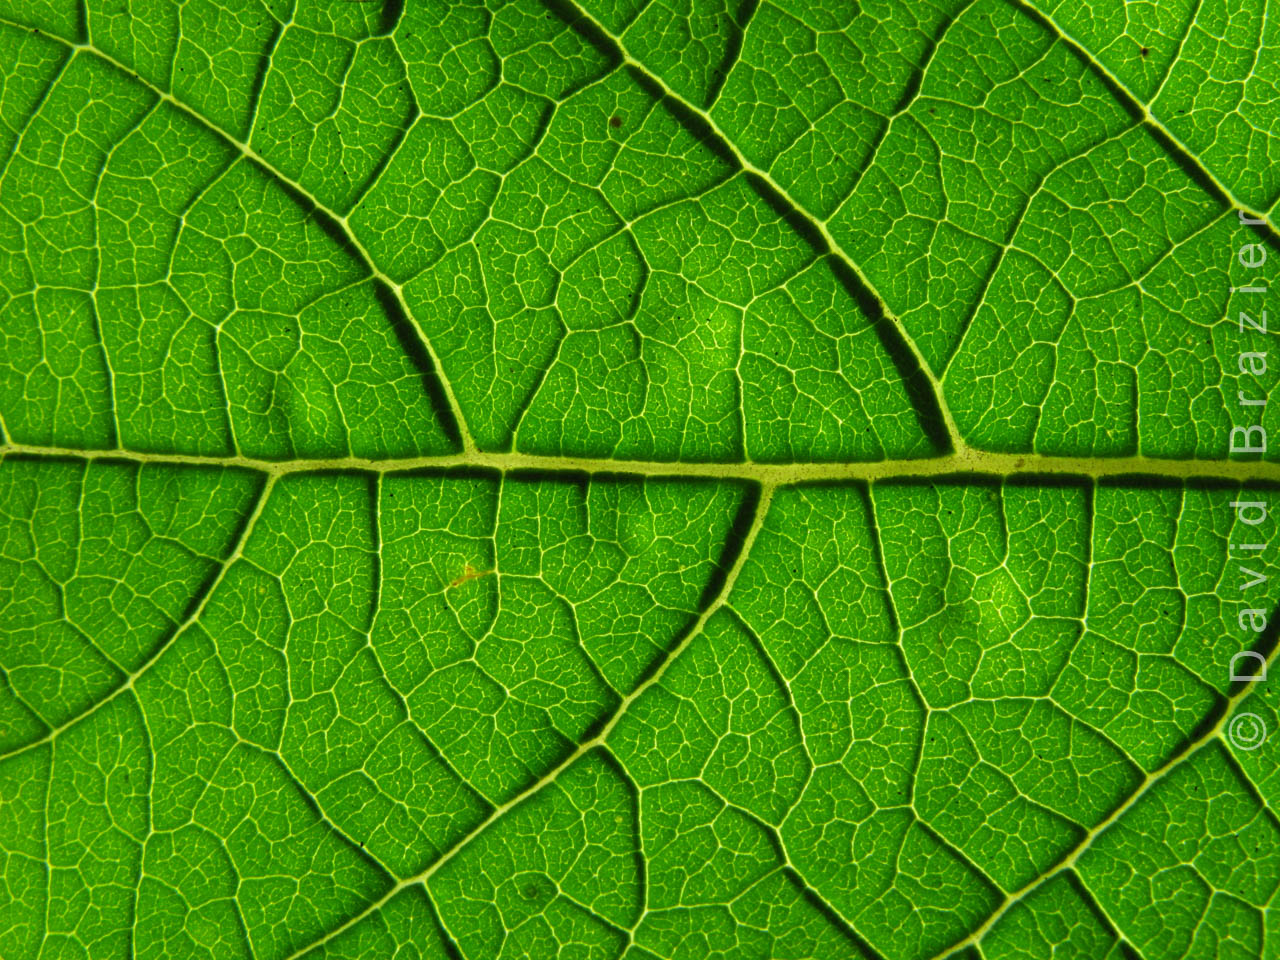 Close up of veins in a leaf with light shining through it